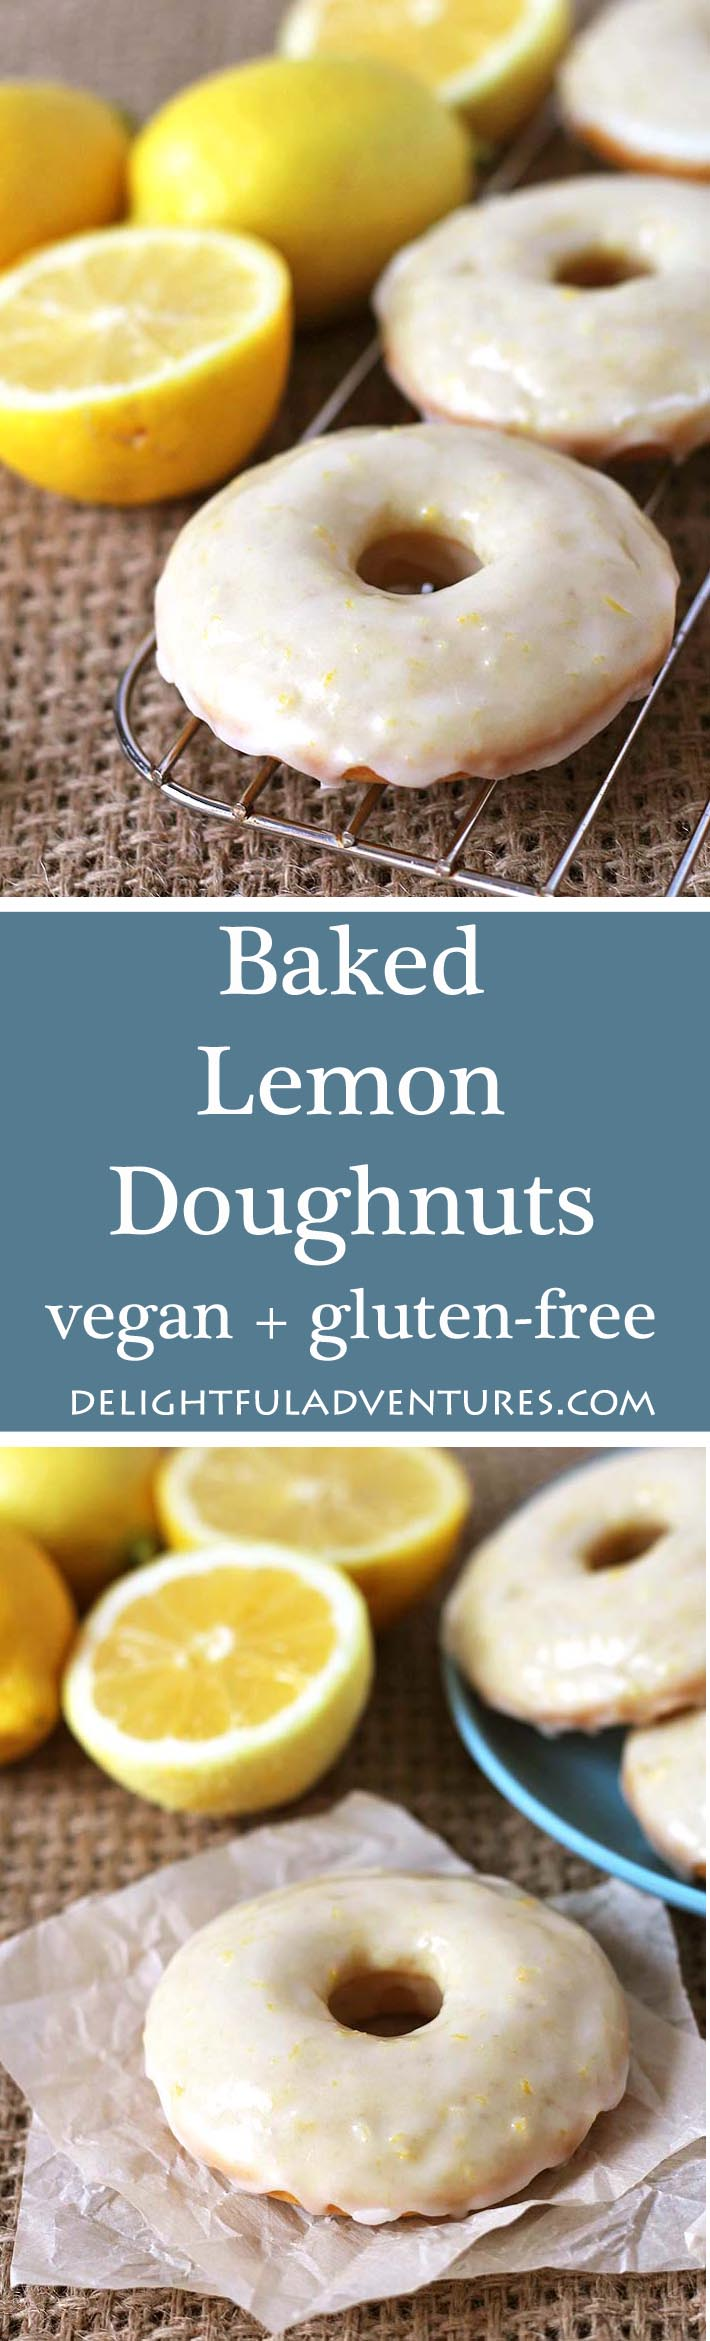 Family and friends will be asking for more when you make them these sweet, tangy, vegan baked lemon doughnuts with lemon glaze! Recipe contains a gluten free option!